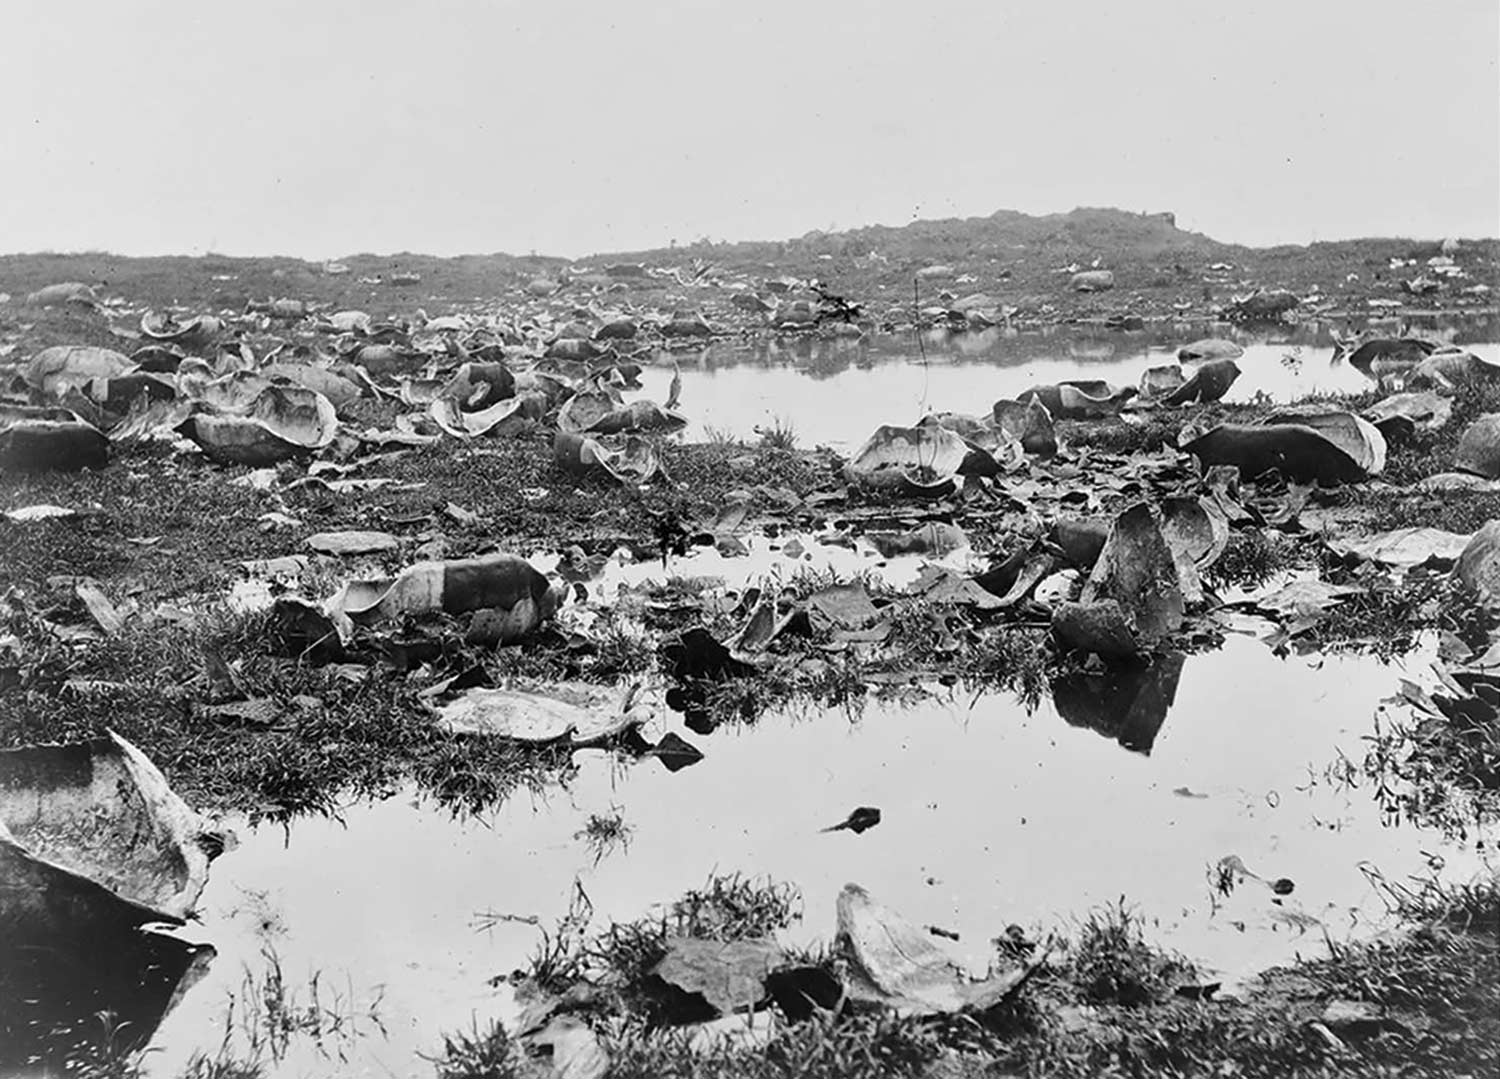 historic photo courtesy Library of Congress; the remnants of slaughtered tortoises on the Galápagos Islands, circa 1903